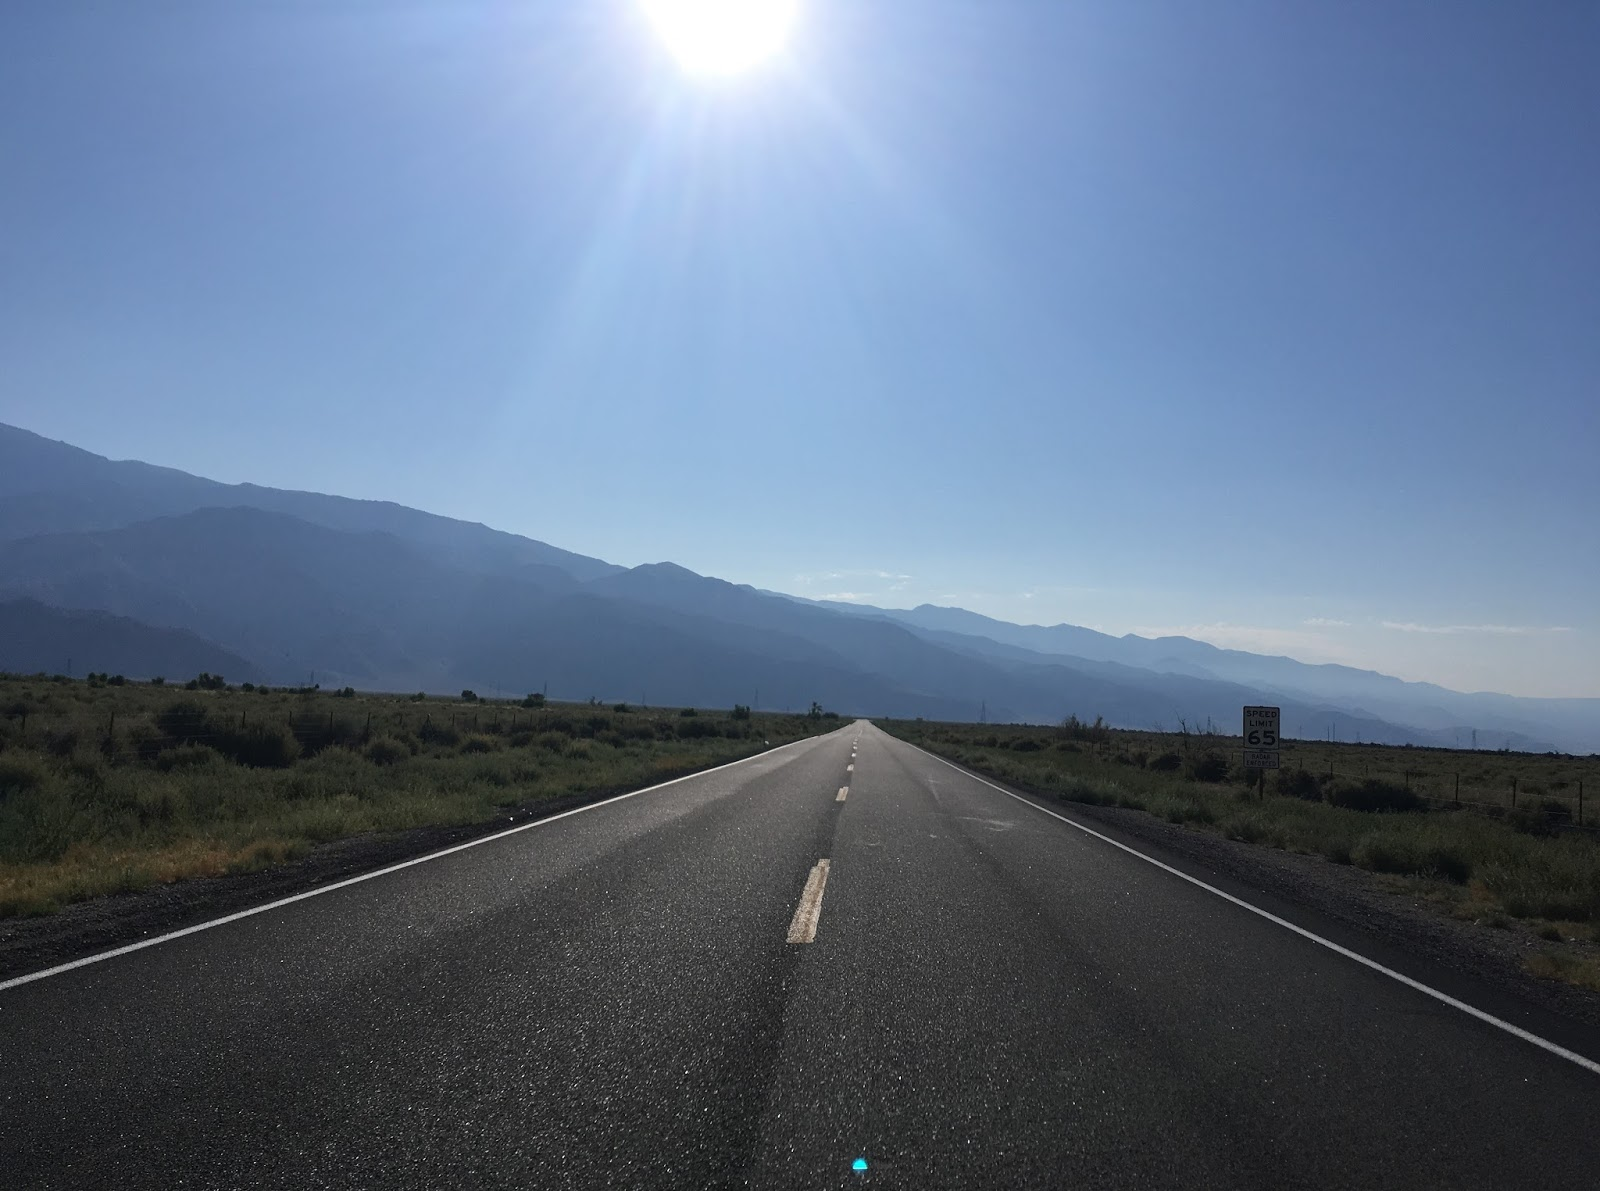 the route of ca 136 is located above the owens lake basin and is one of the few state highways in california signed at 65 mph